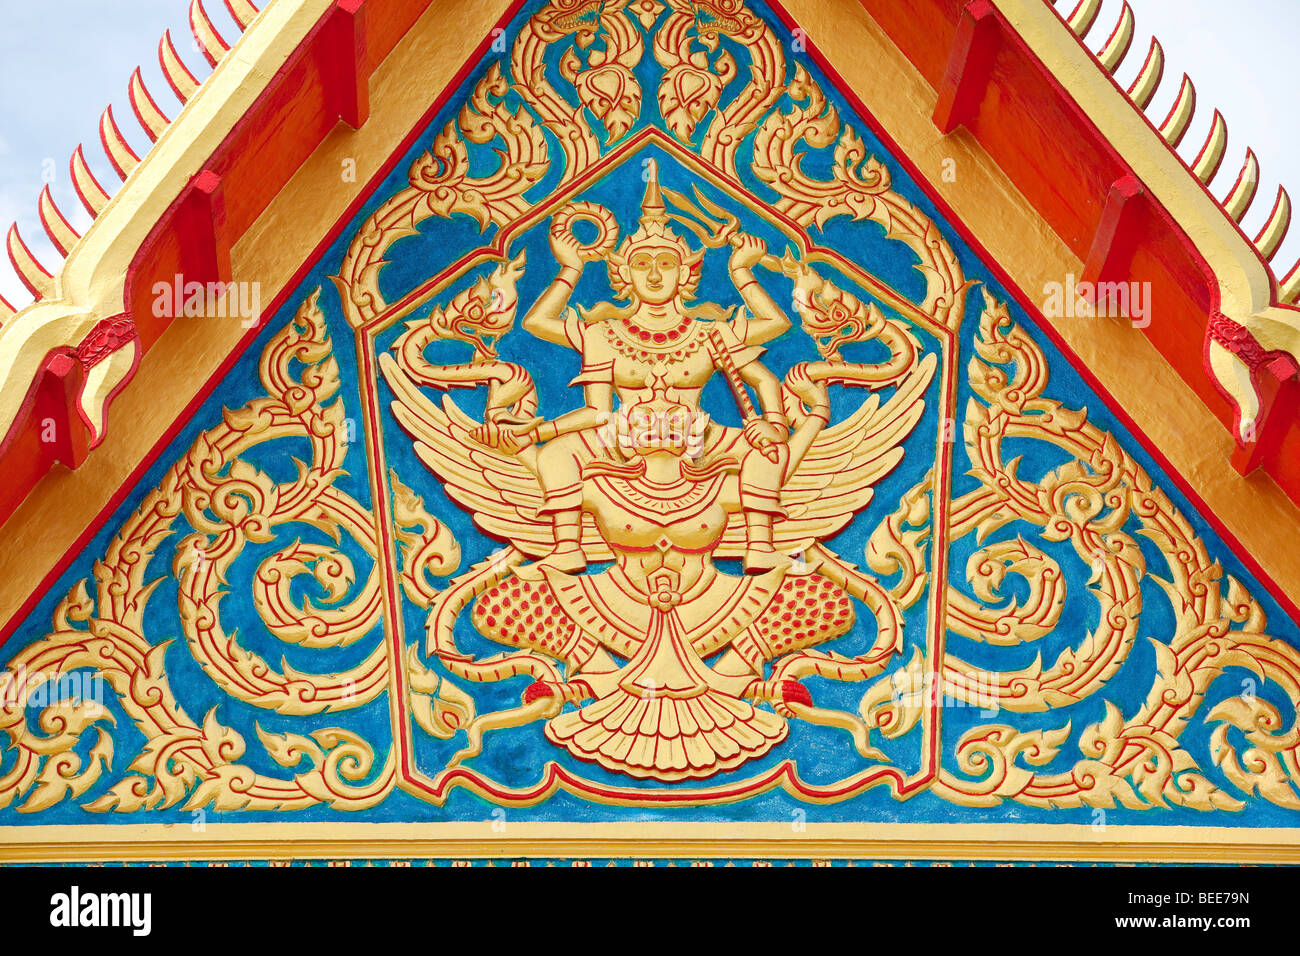 Wat Chalong temple detail of a temple building Phuket Island Southern Thailand Southeast Asia - Stock Image